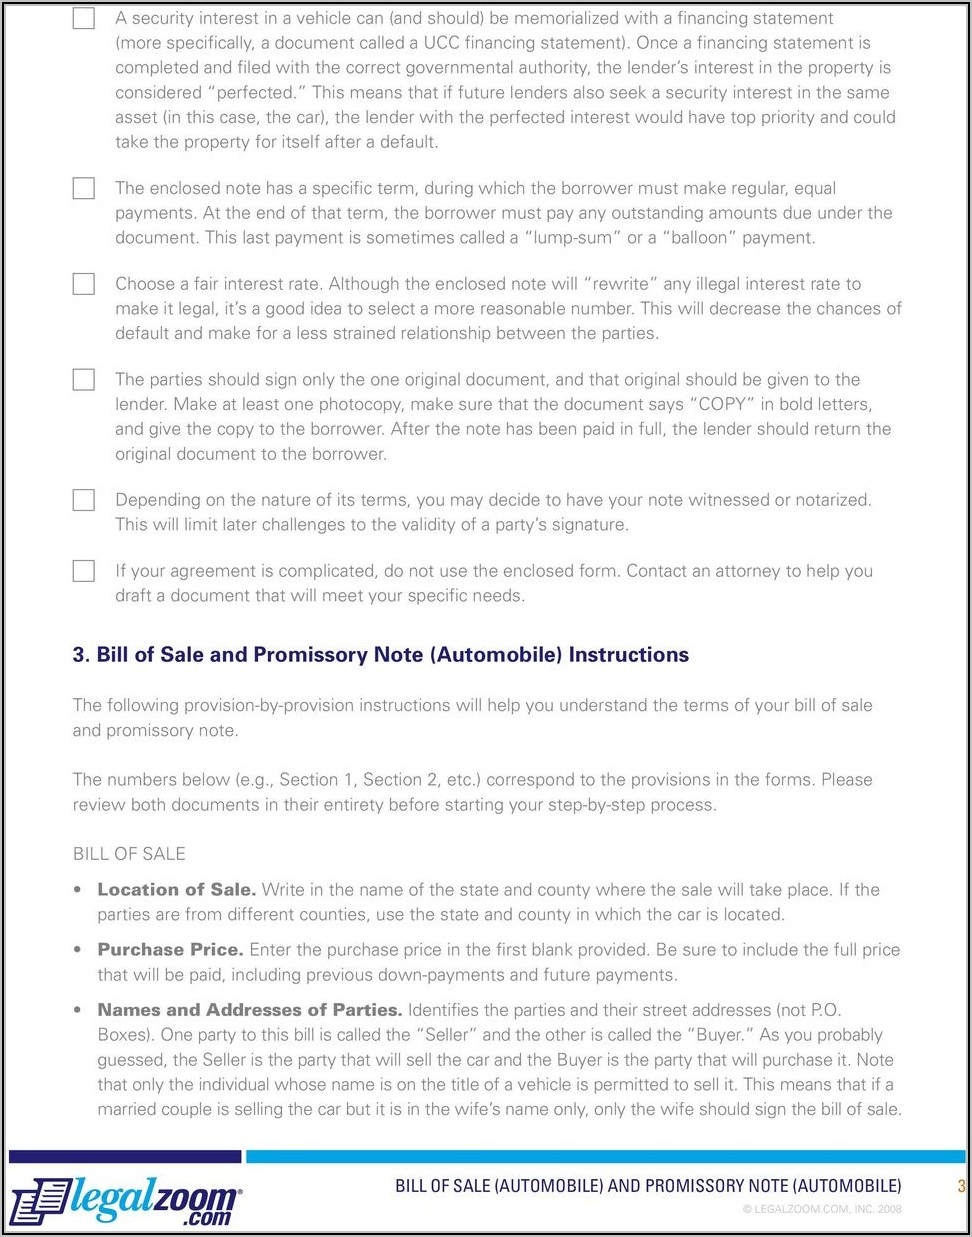 Vehicle Bill Of Sale With Promissory Note Template